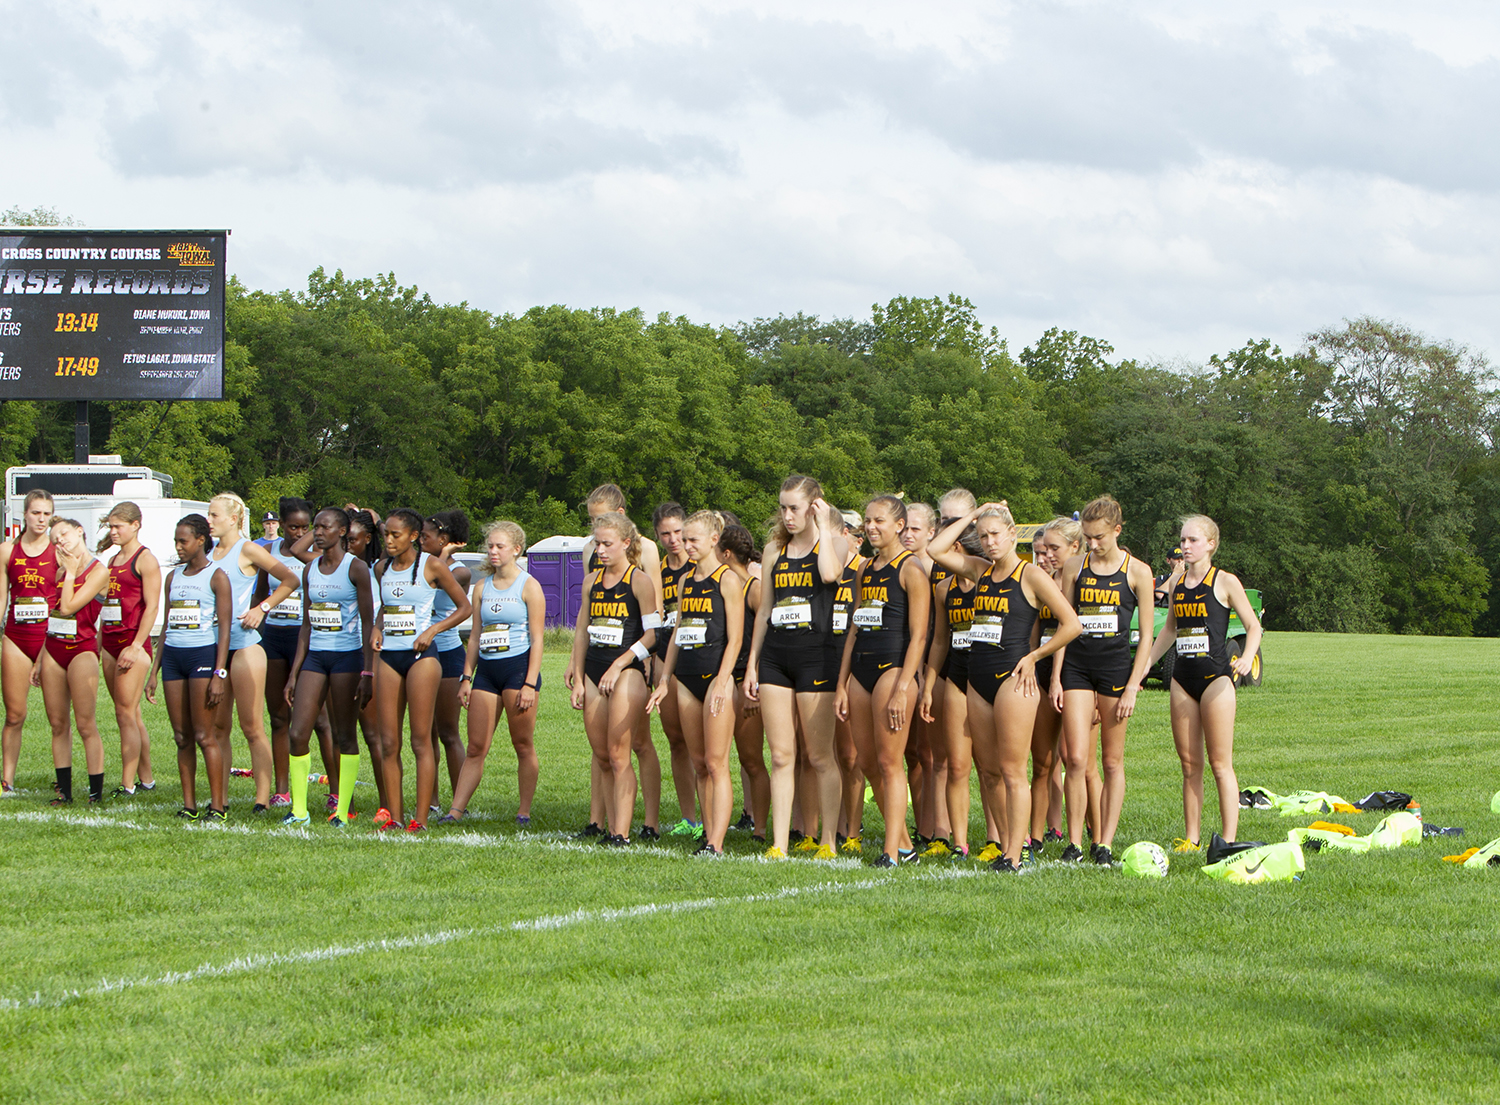 The Hawkeyes begin the Women's 4k race at the Hawkeye Invitational on Friday, August 31, 2018 at Ashton Cross Country Course. The Hawkeyes were defeated by Iowa State 56 to 24.